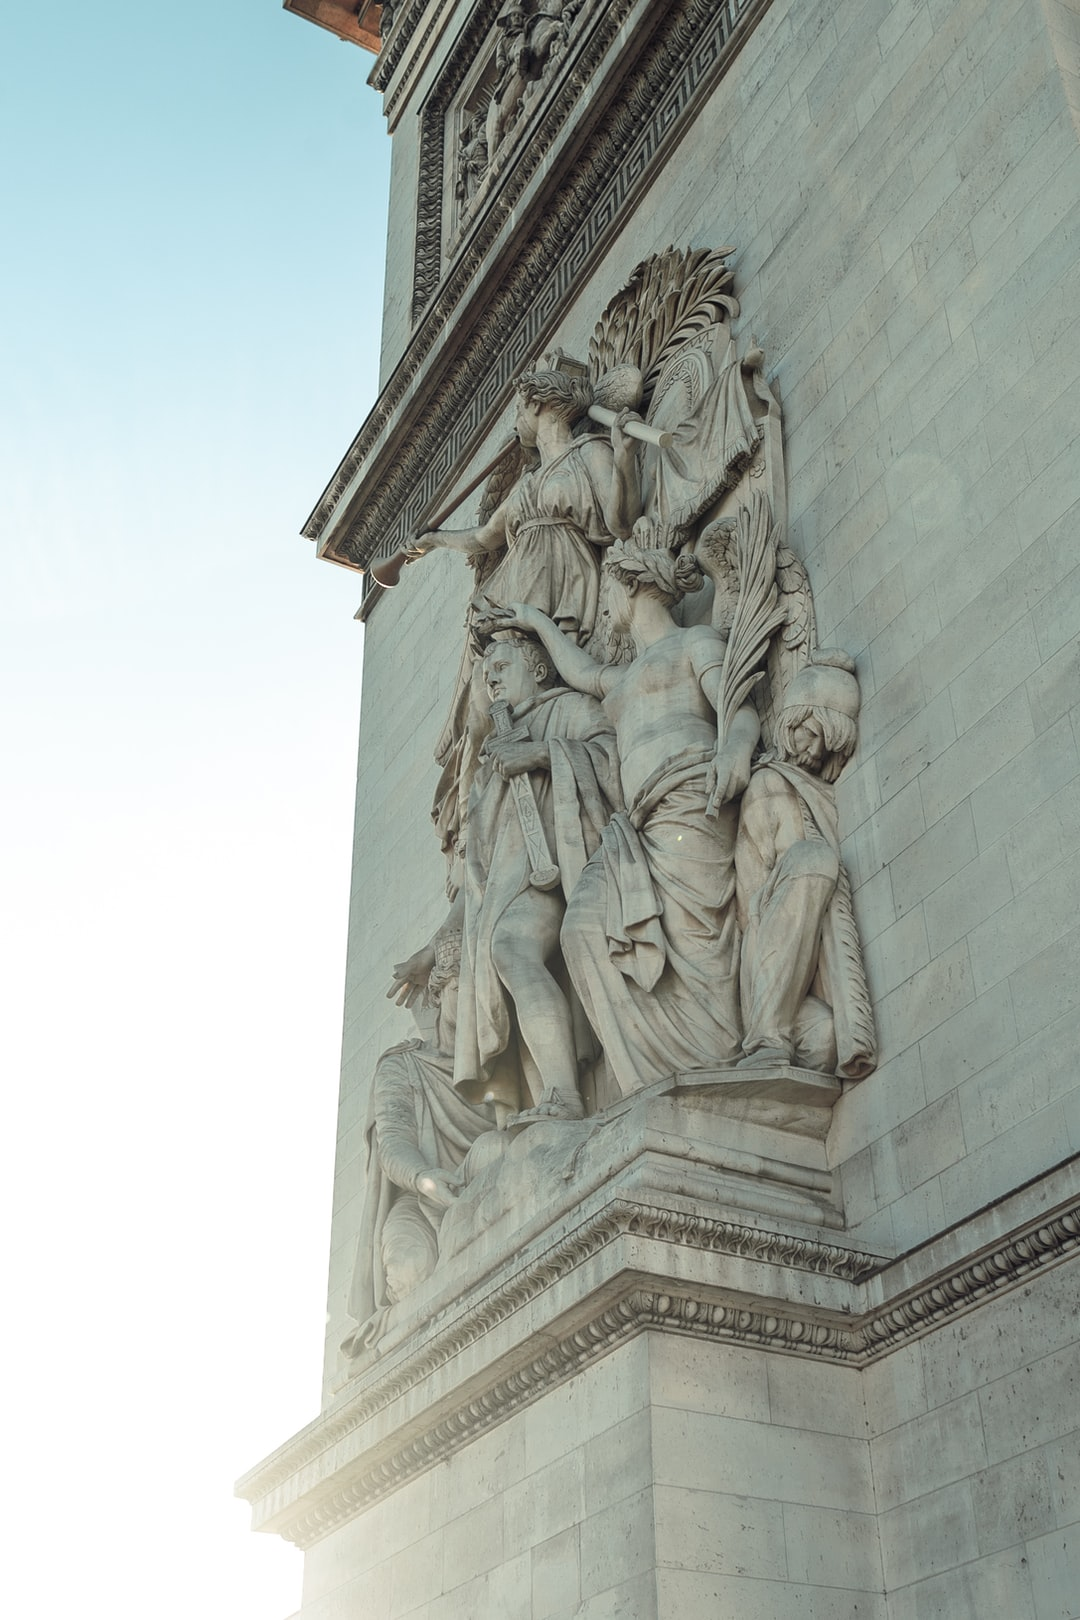 A view of the statues on the Arc De Triomphe in Paris, France